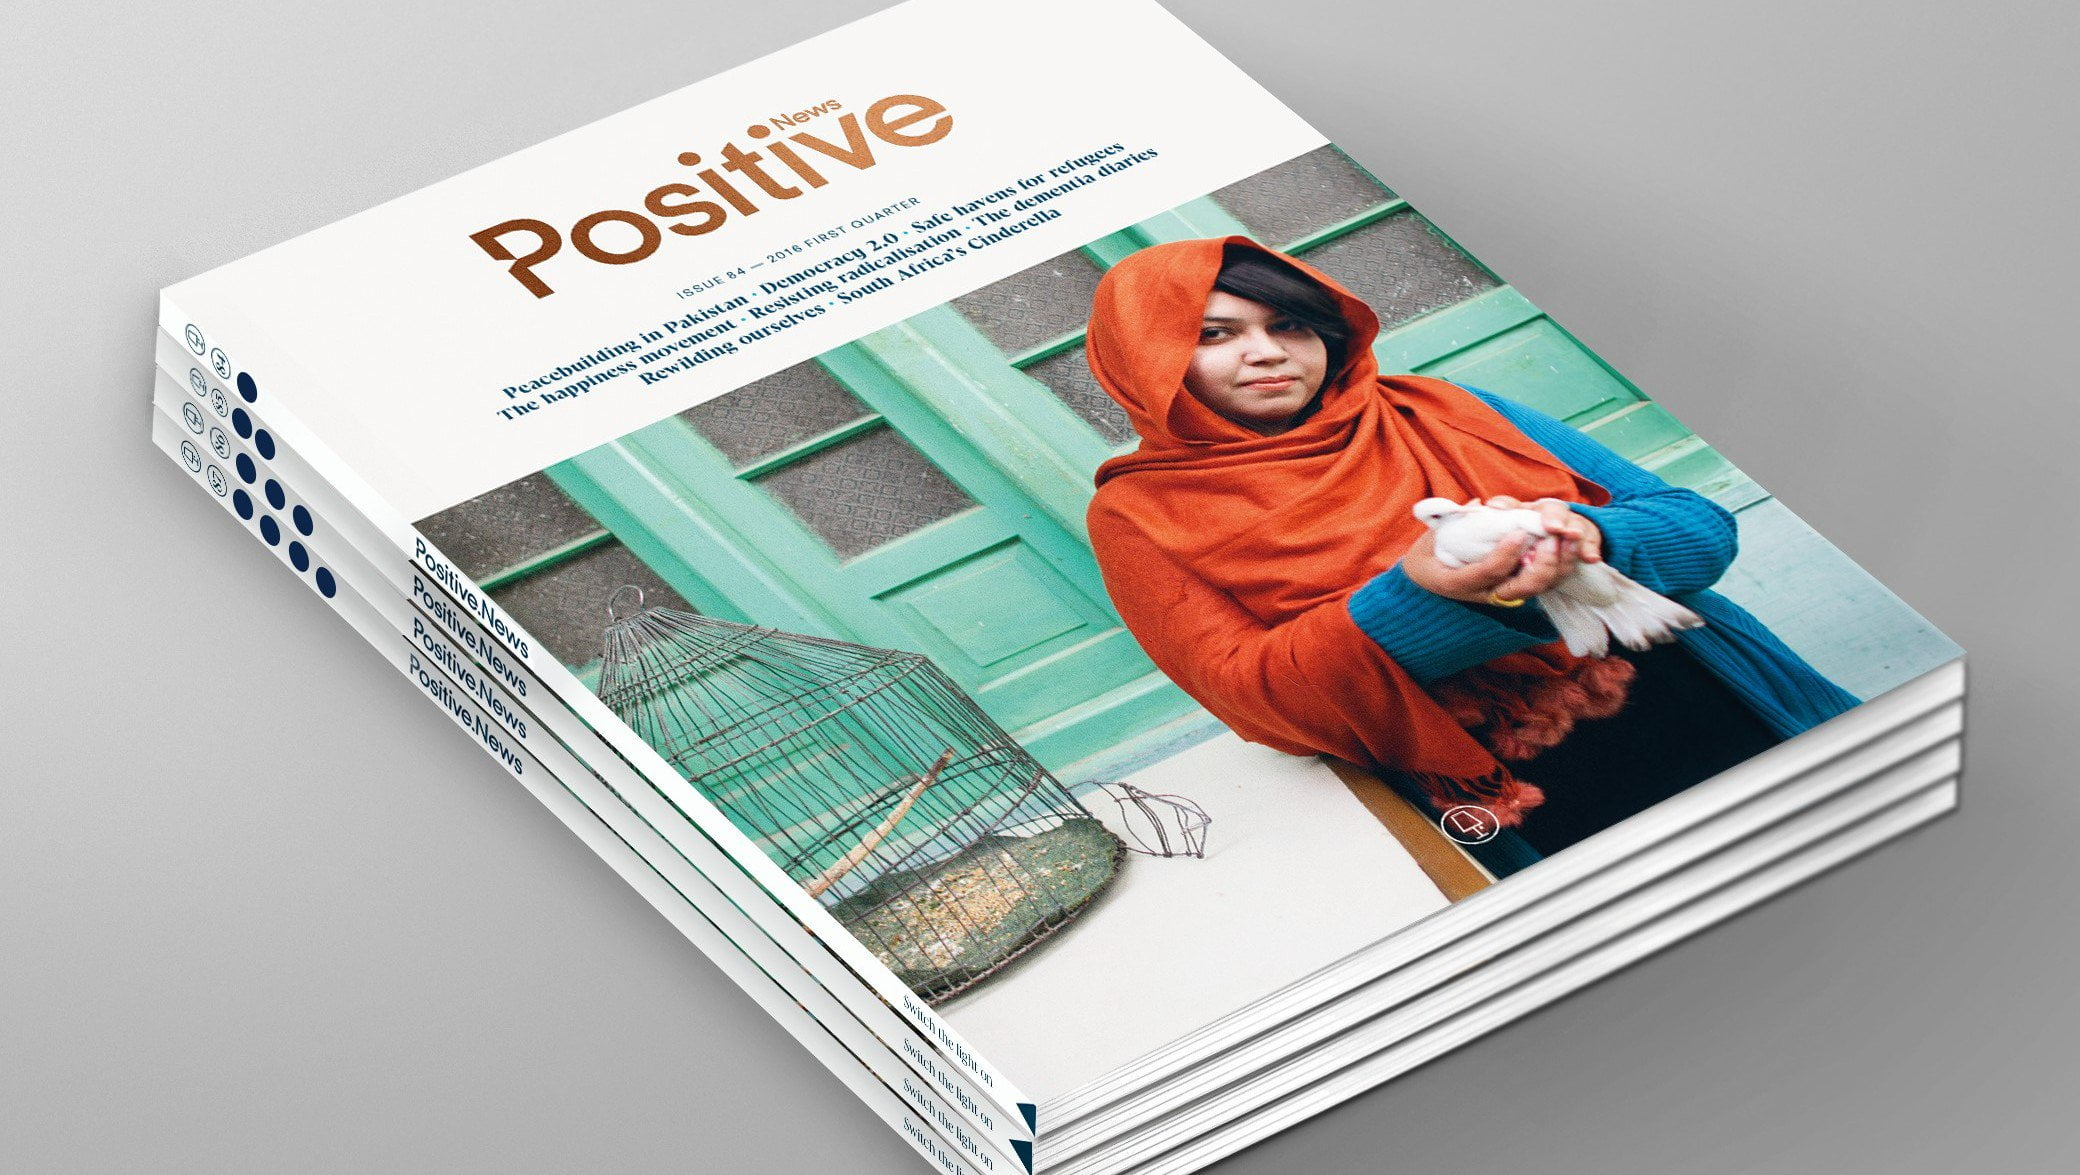 Positive-News-relaunch-edition-magazine-stack_cropped-e1454593406911.jpg (2080×1175)